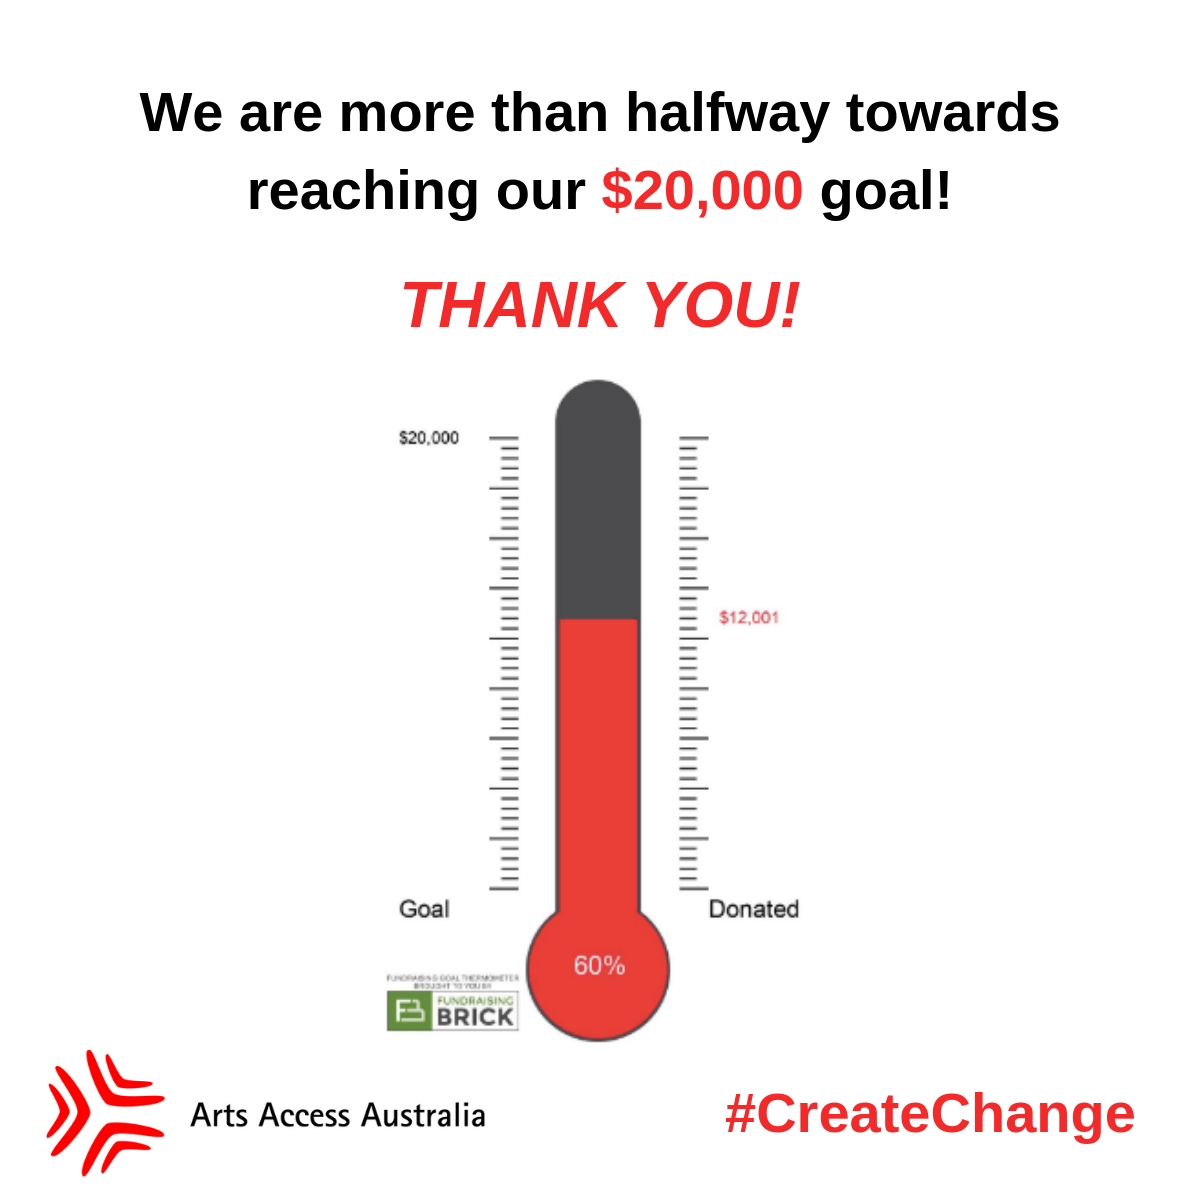 Fundraising thermometer showing 60% of a $20,000 target reached